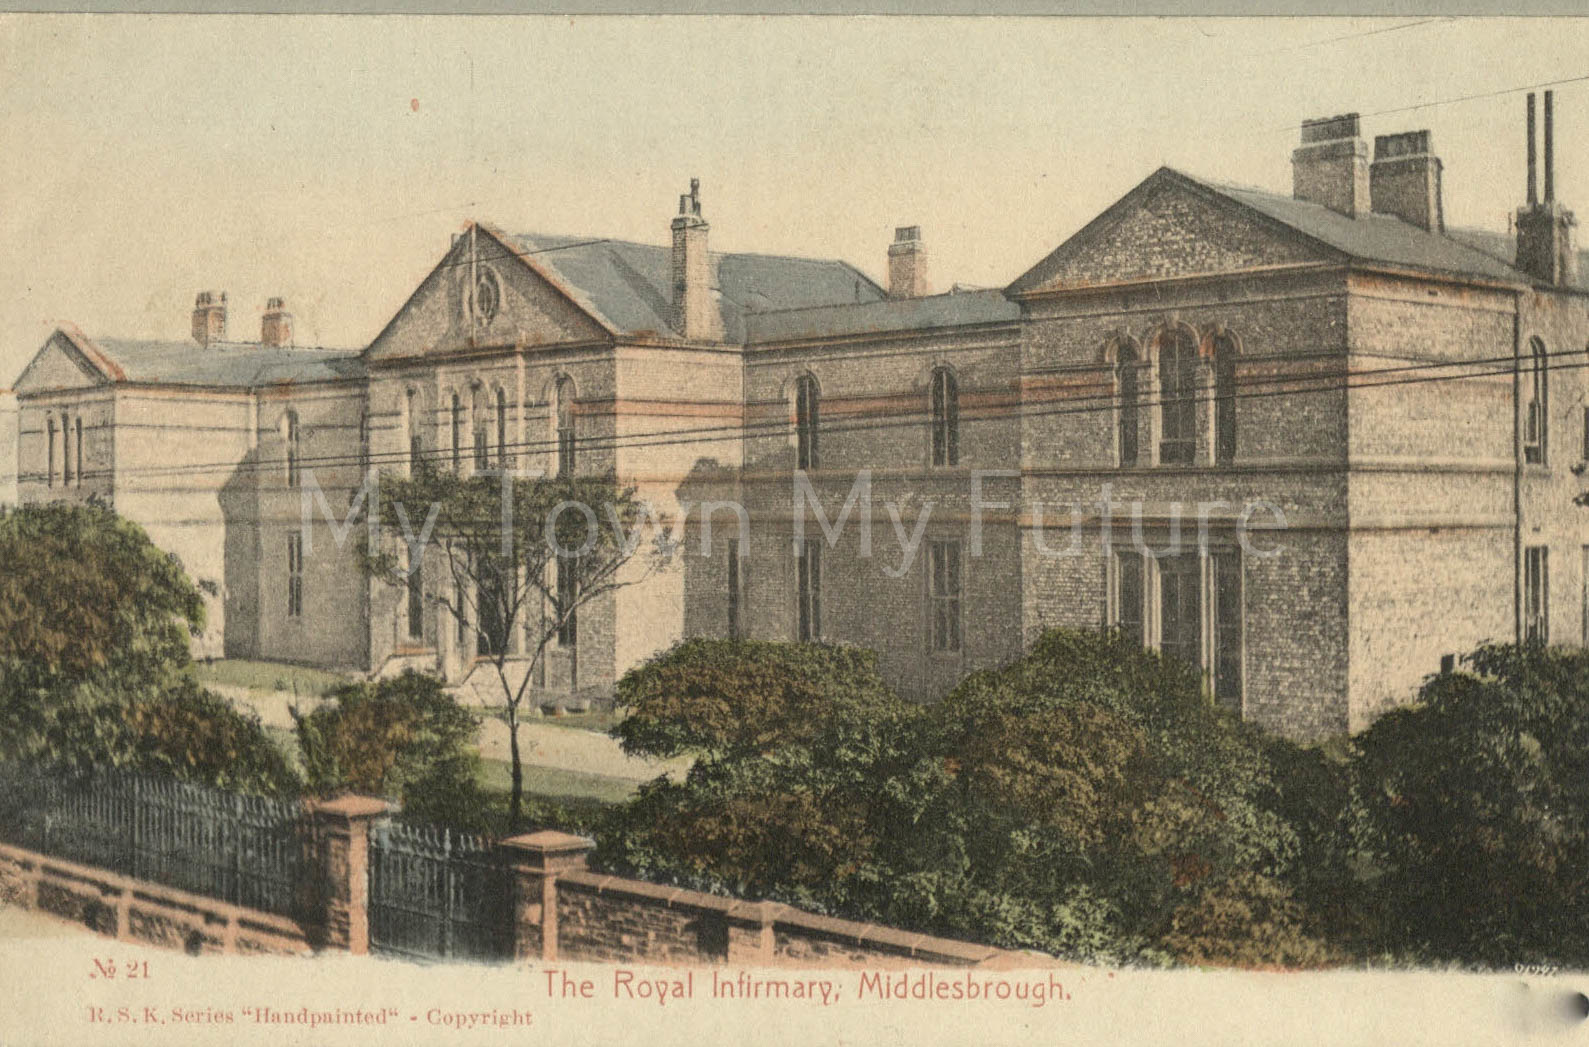 Middlesbrough North Riding Infirmary, RSK Series